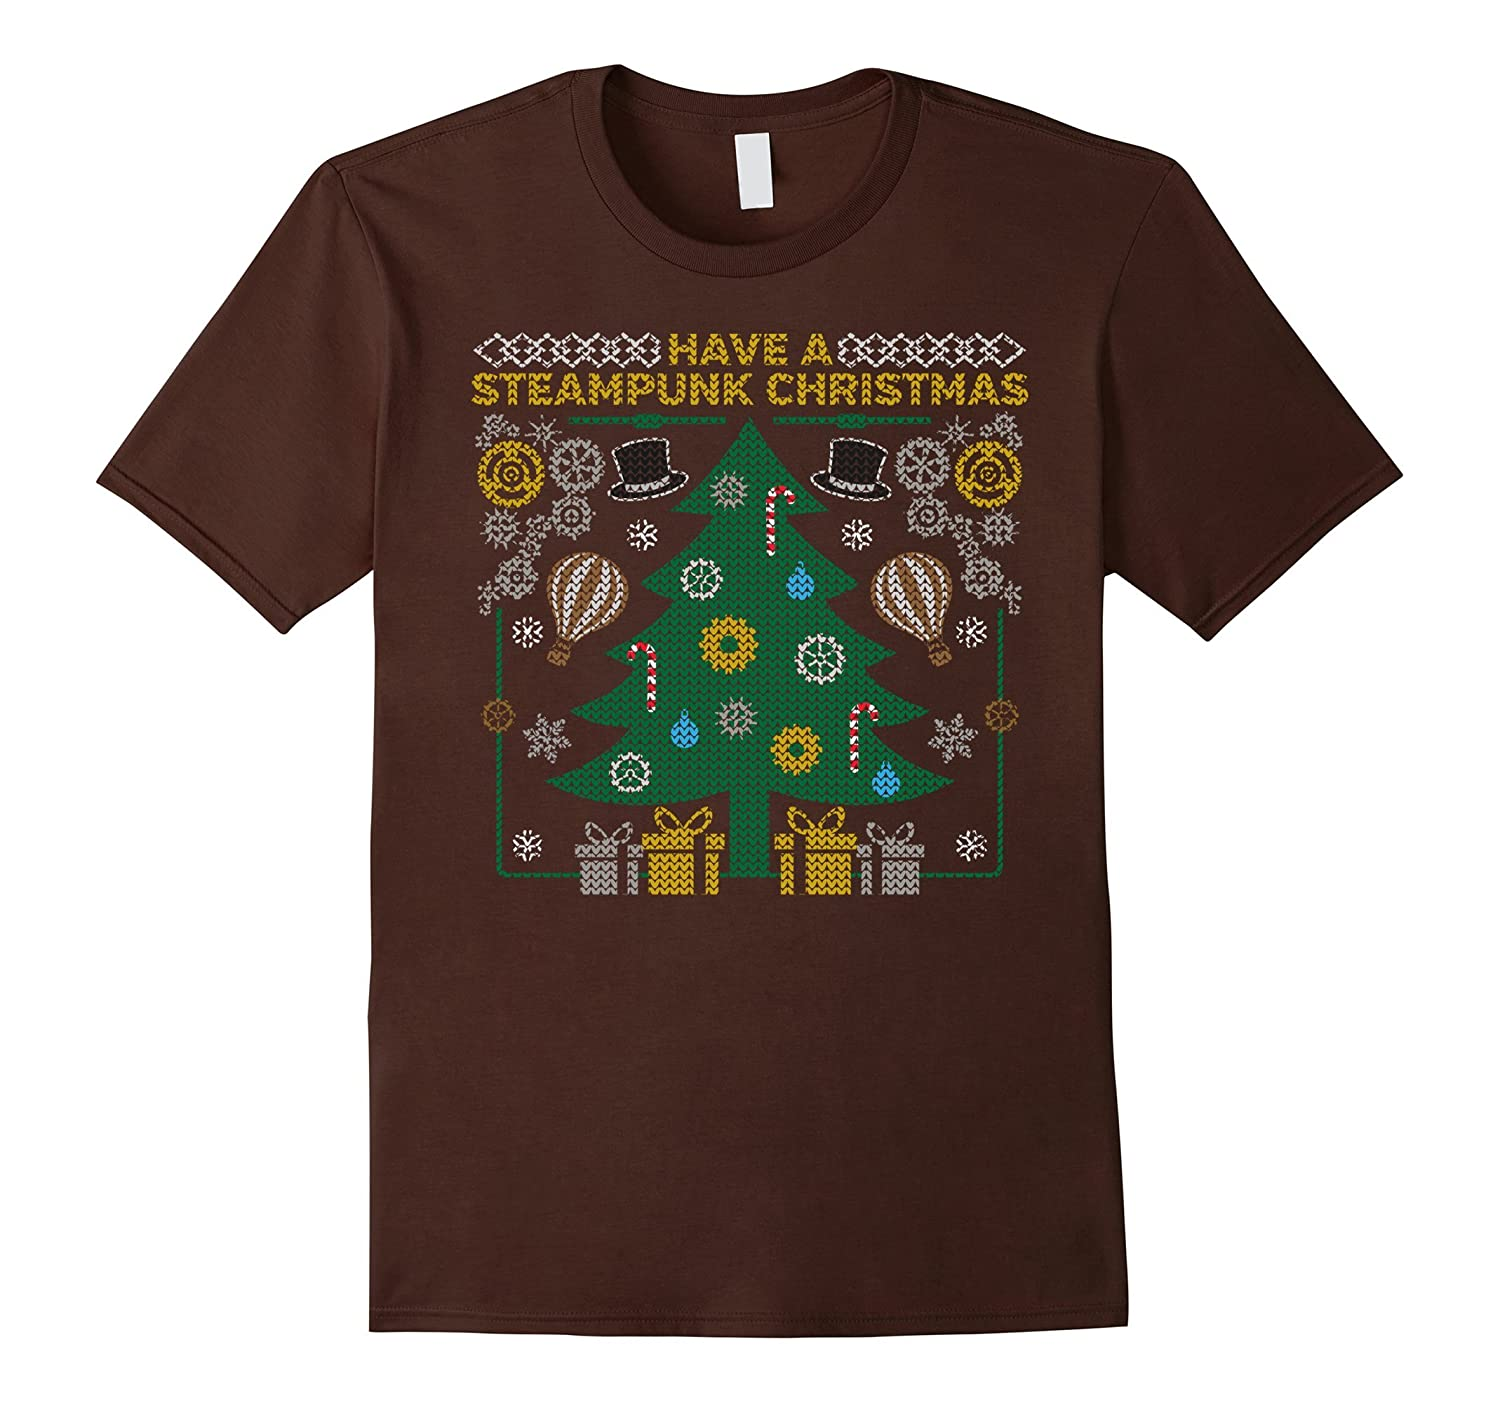 Steampunk Tree Gears Top Hat Ugly Xmas Sweater T-Shirt